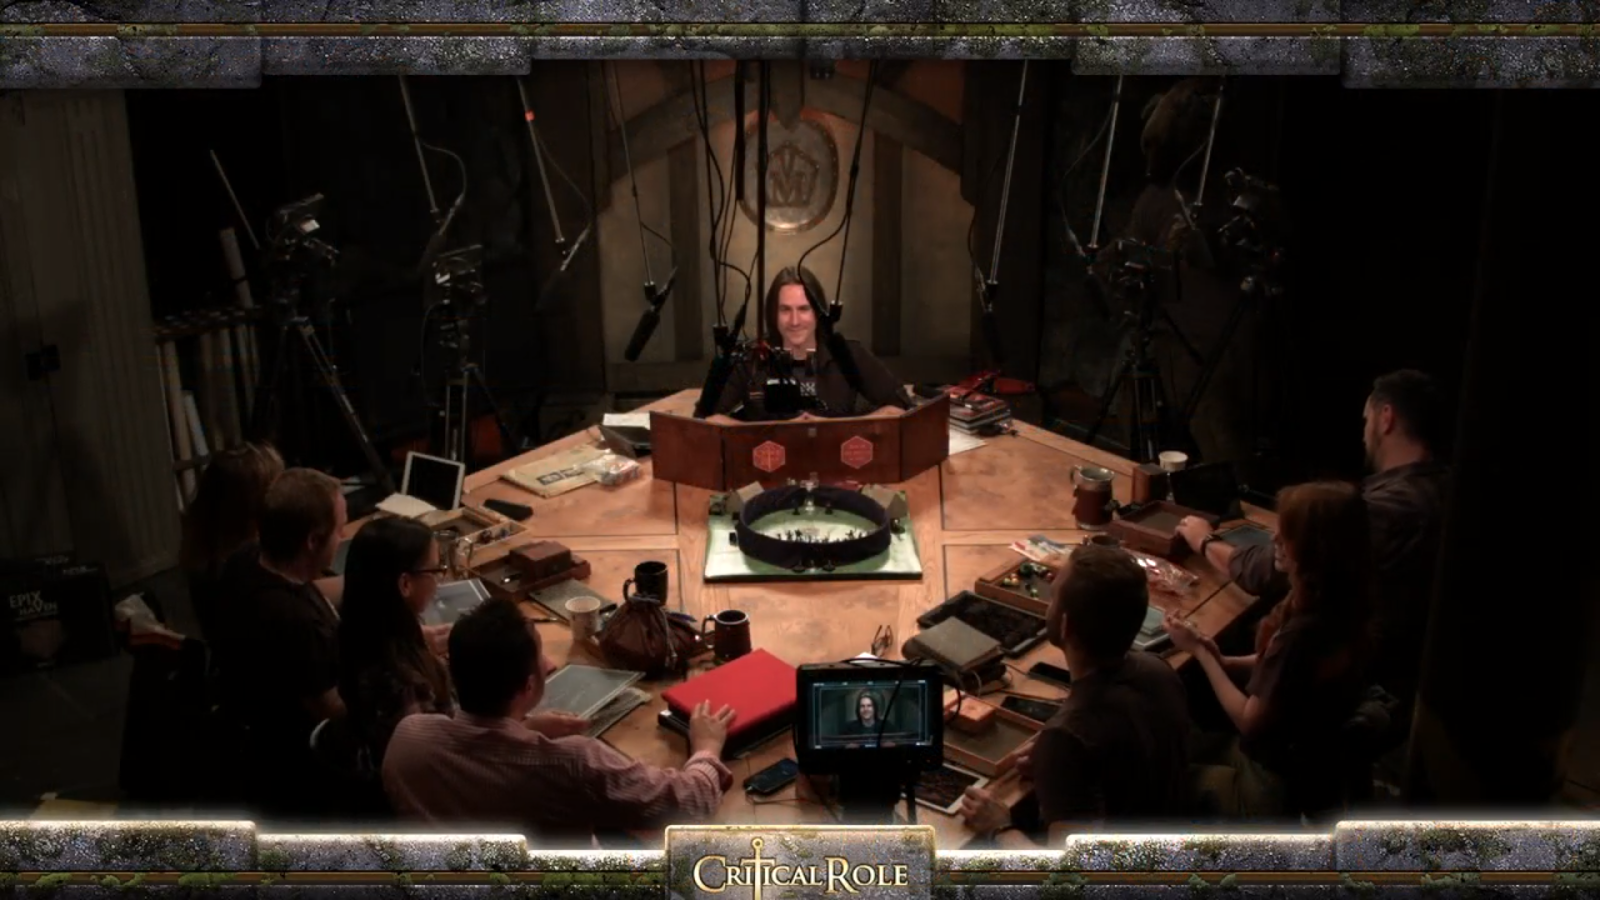 Critical Role Opens a New Campaign - The Fifth World